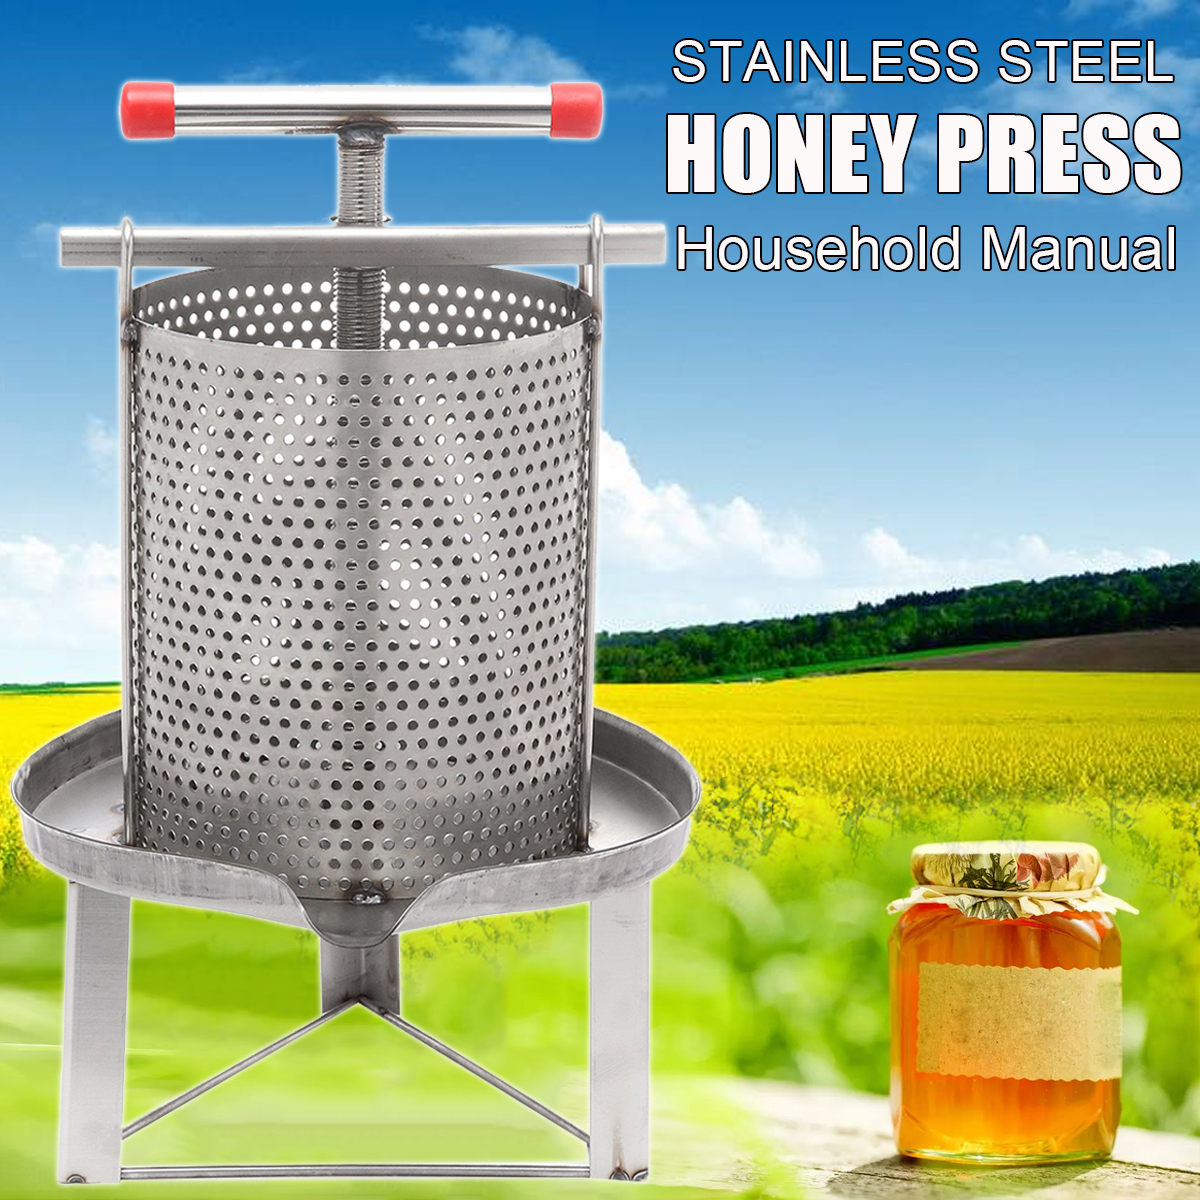 Stainless Steel Manual Bee Honey Press Household Wax Pressing Machine Beekeeping Tools Set